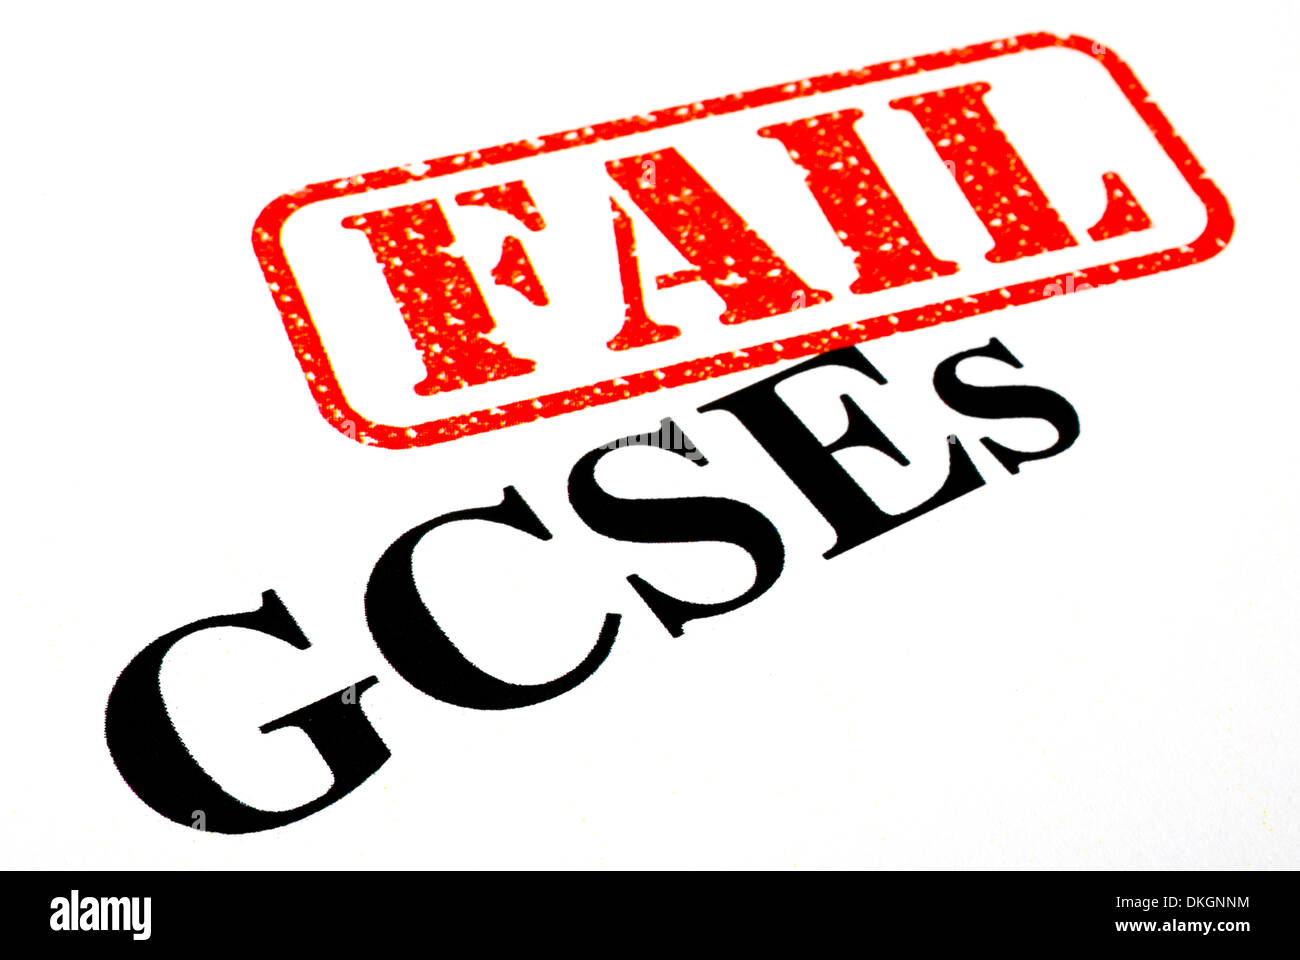 Failed your GCSE exams. - Stock Image